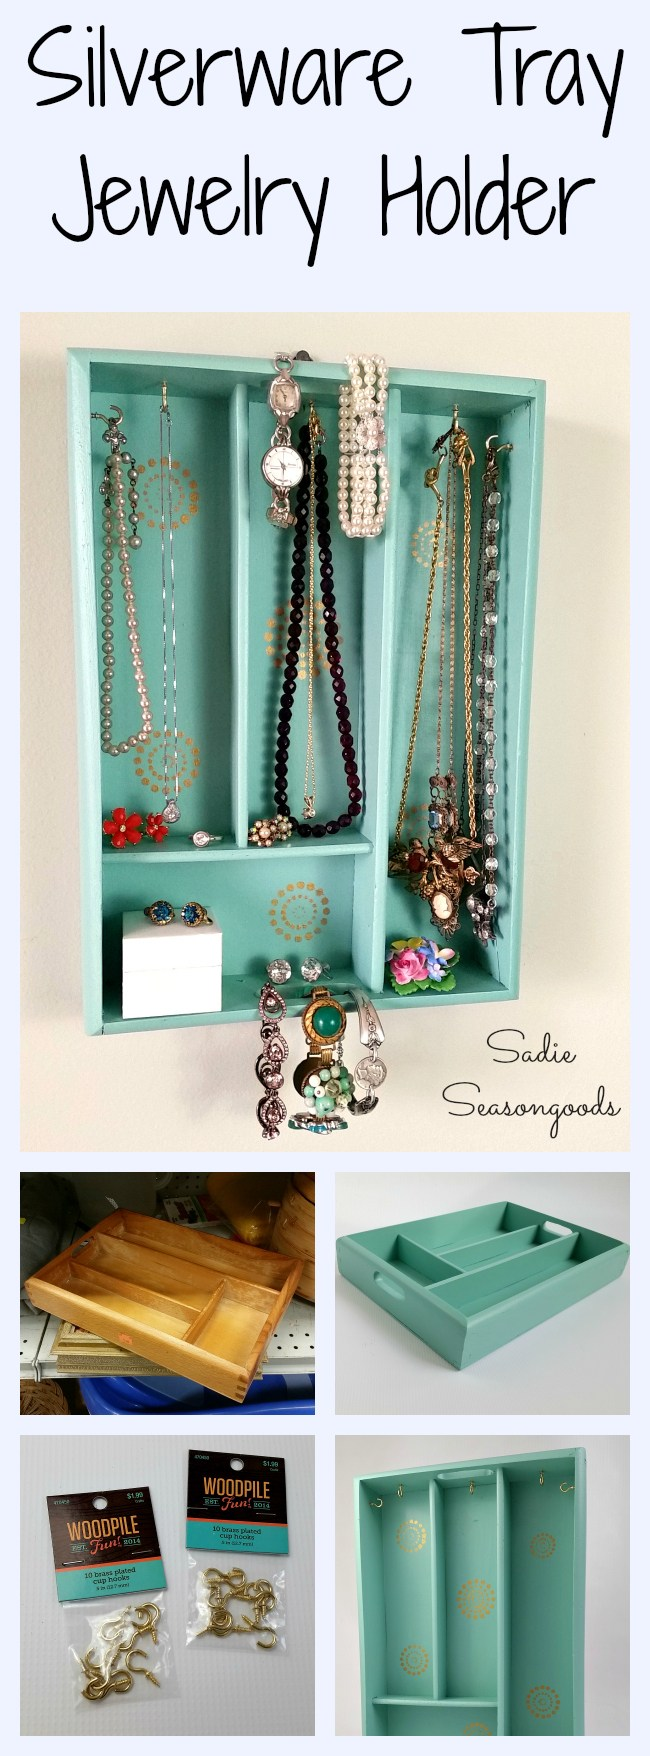 silverware tray upcycled into jewelry organizer